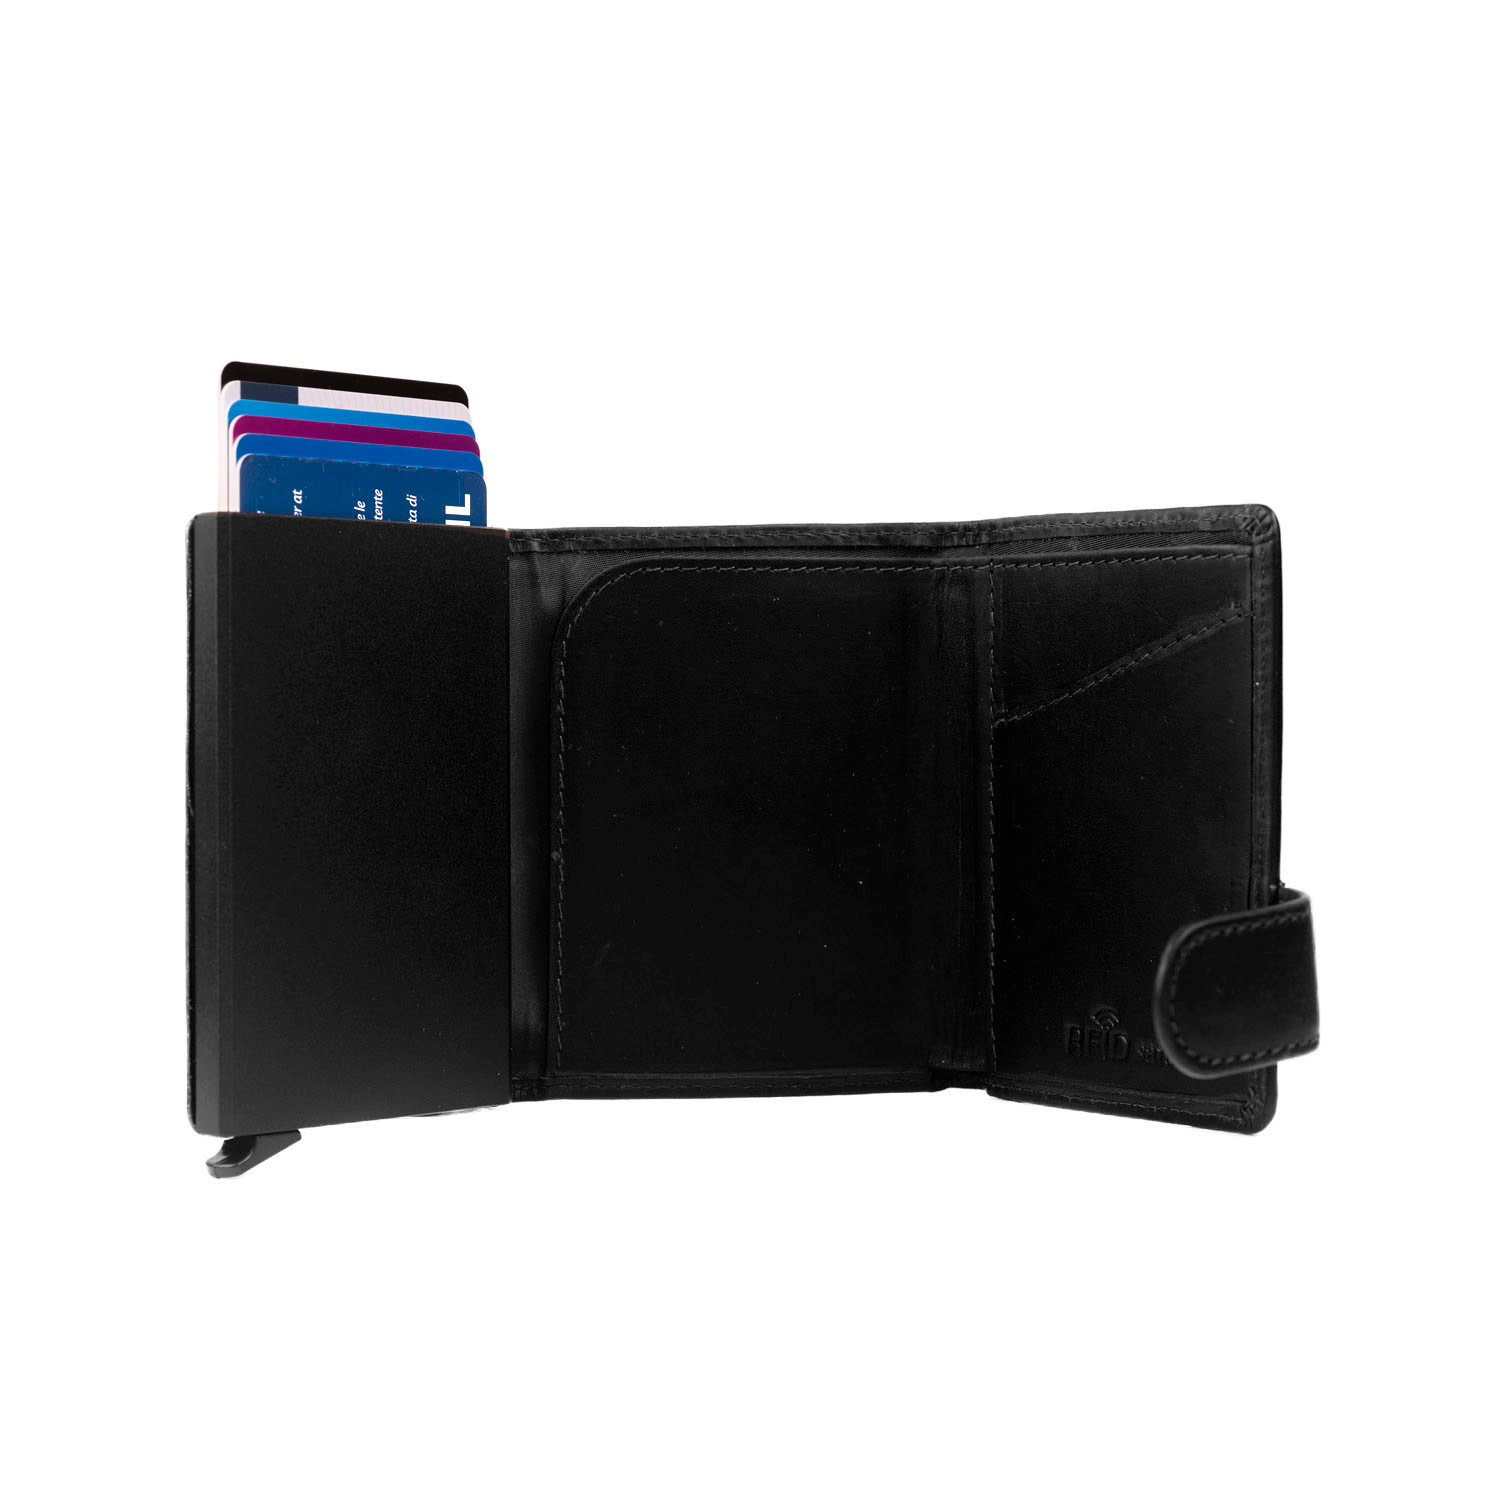 Chesterfield Chesterfield Leicester Cardholder Waxed Leather Black